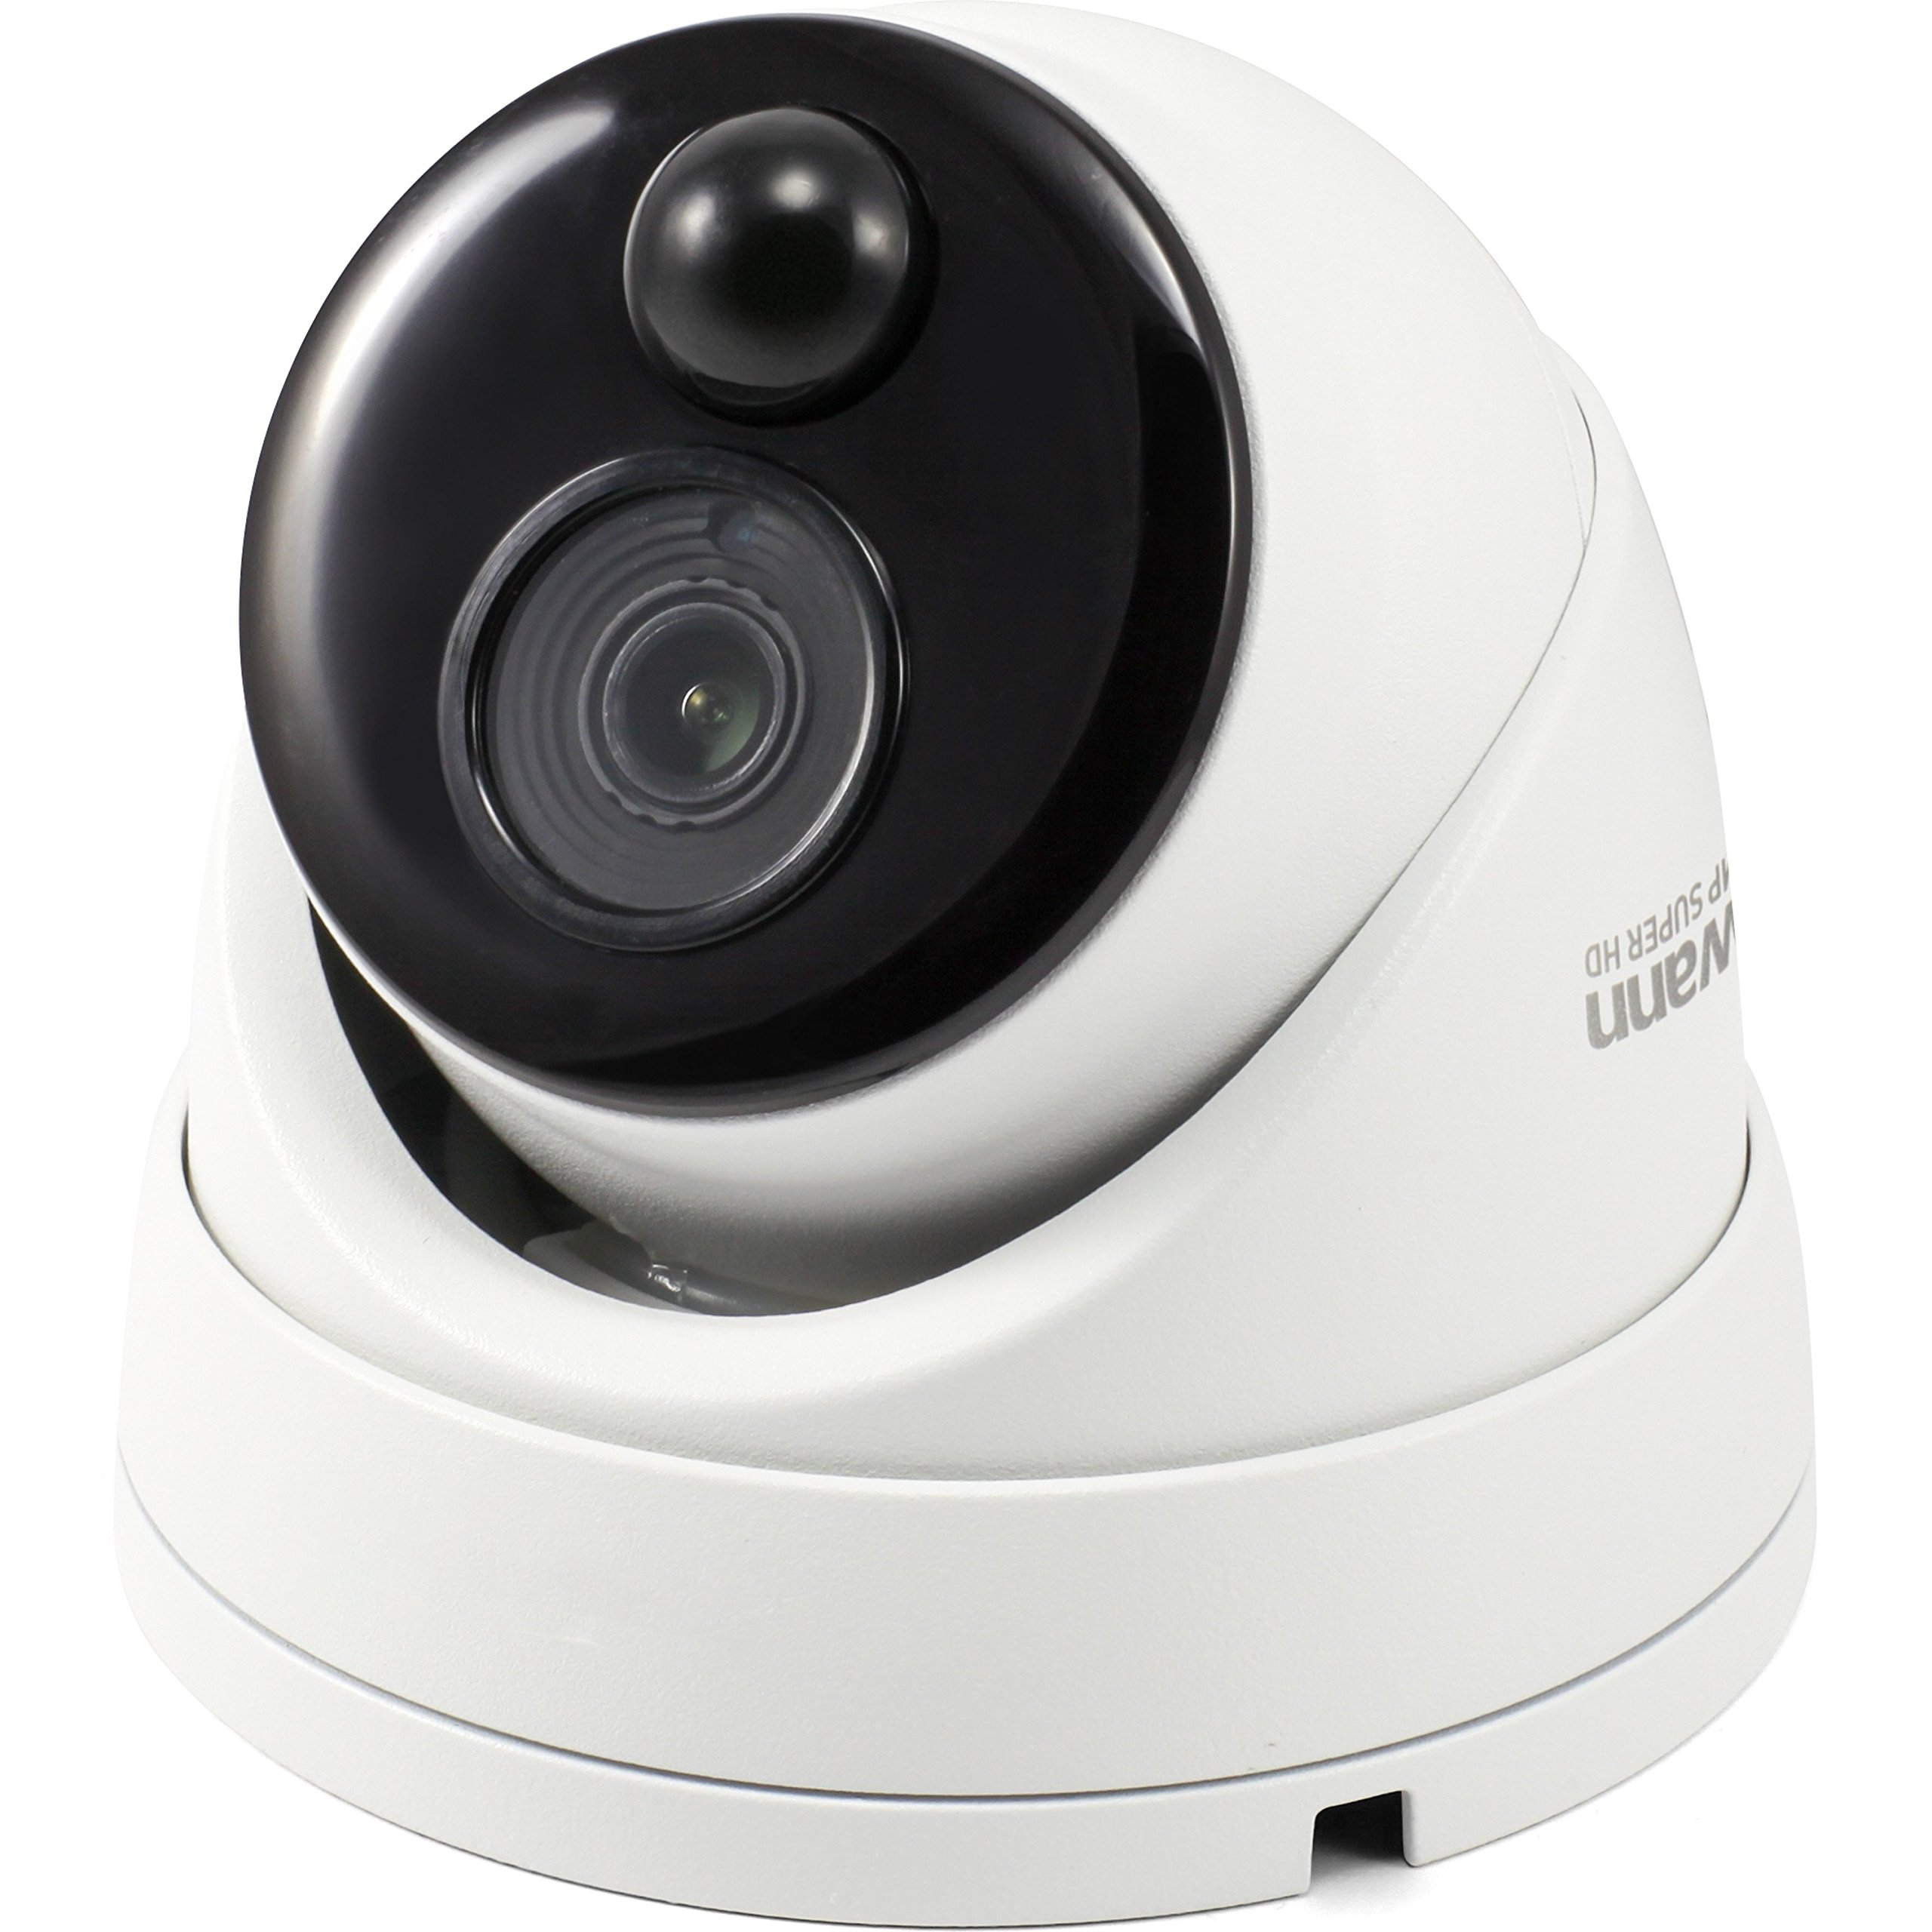 Swann 5MP Dome DVR Security Camera with Heat & Motion Sensing + Night Vision by Swann